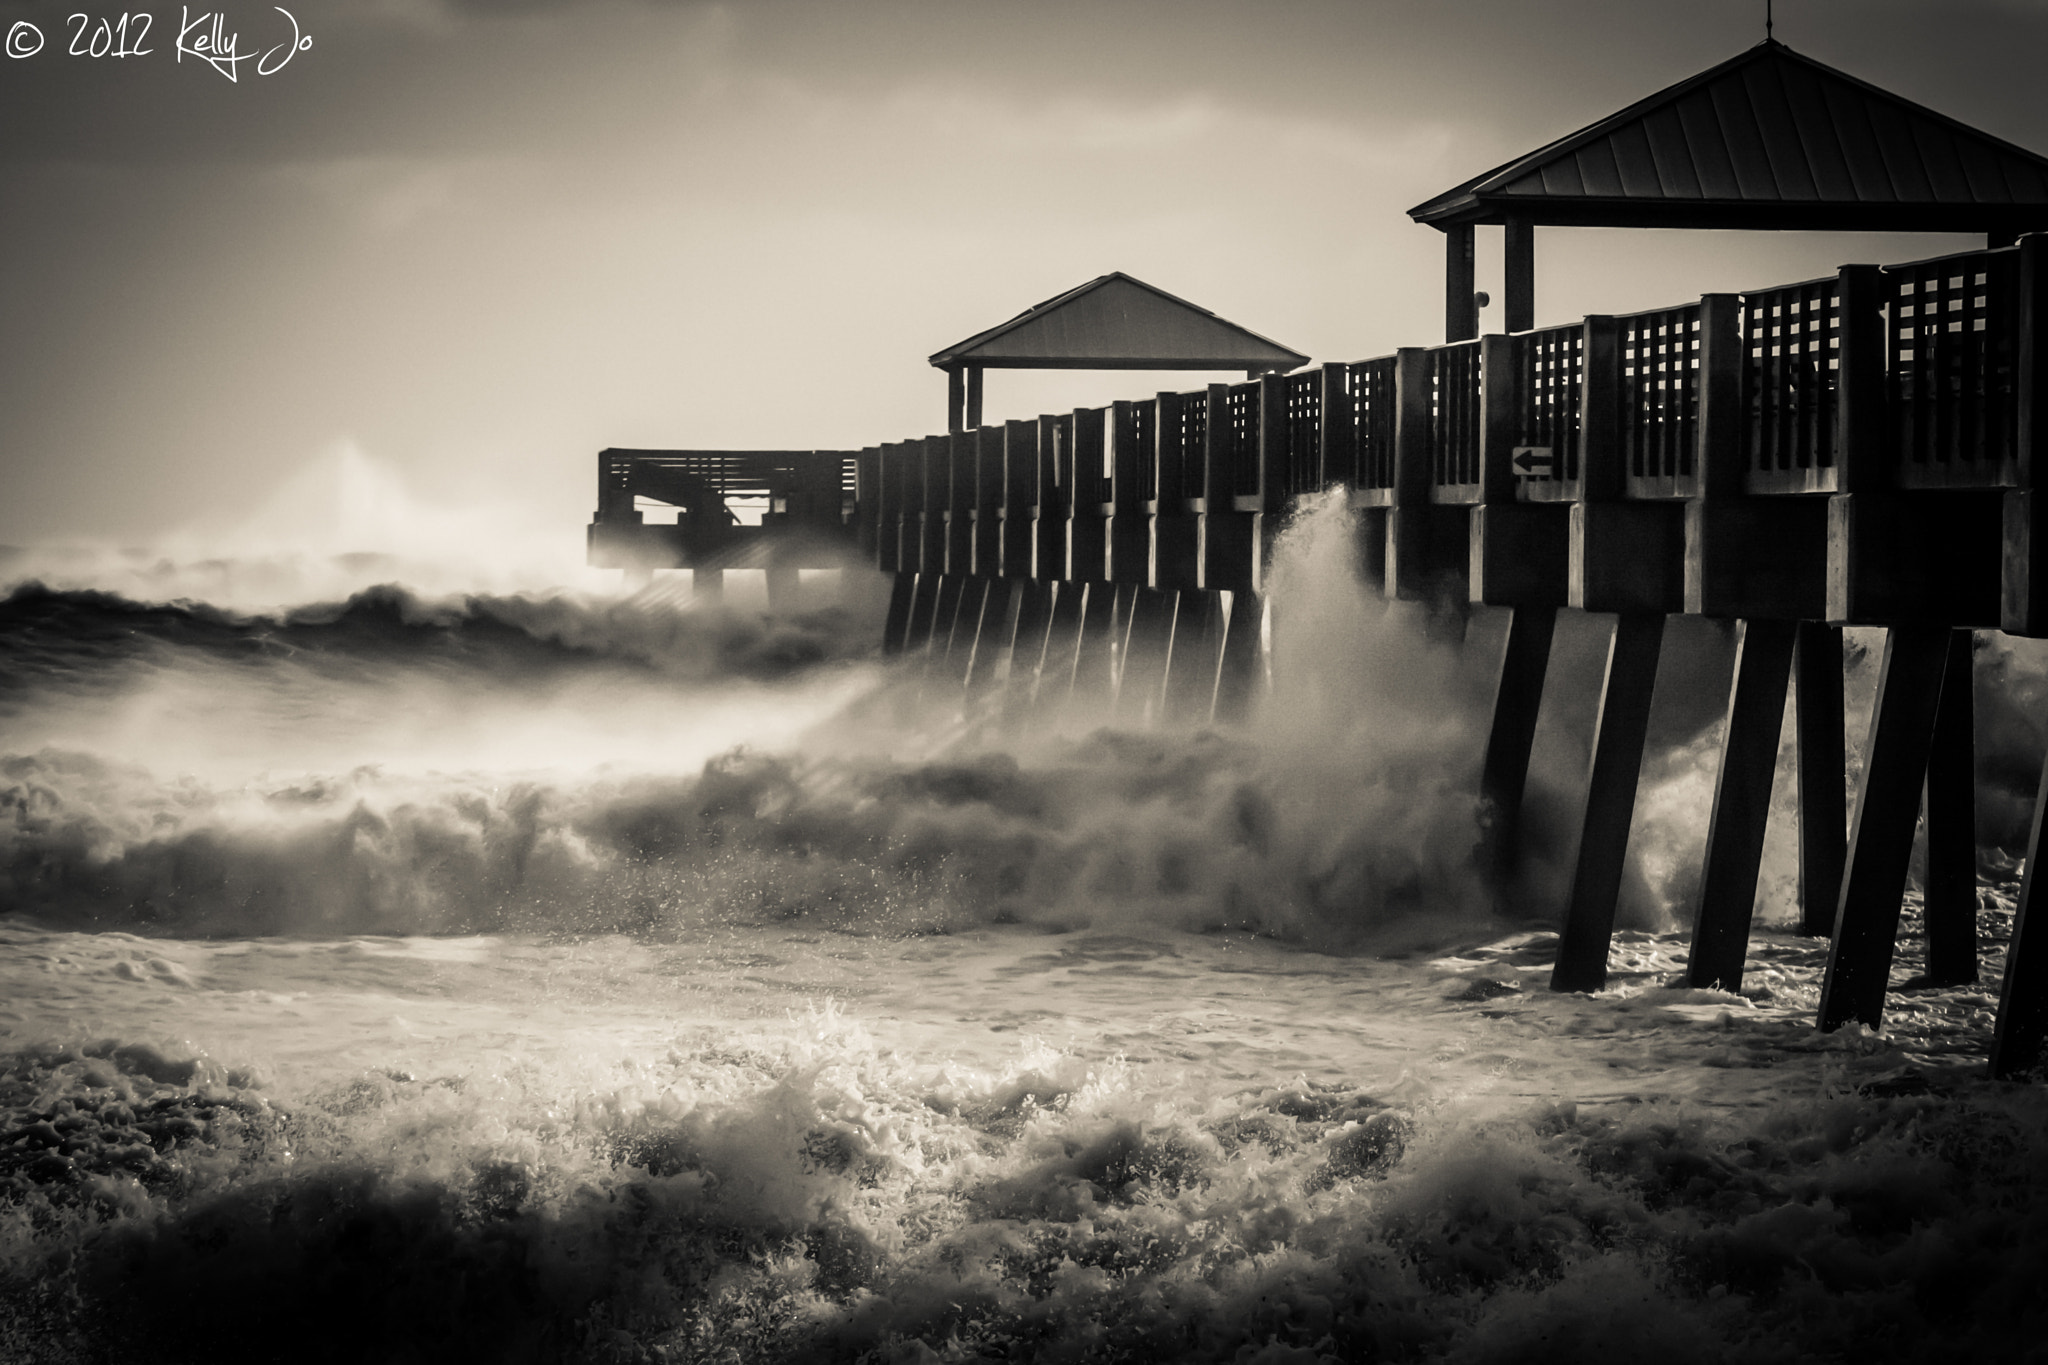 Photograph Hurricane Sandy by Kelly Martin on 500px